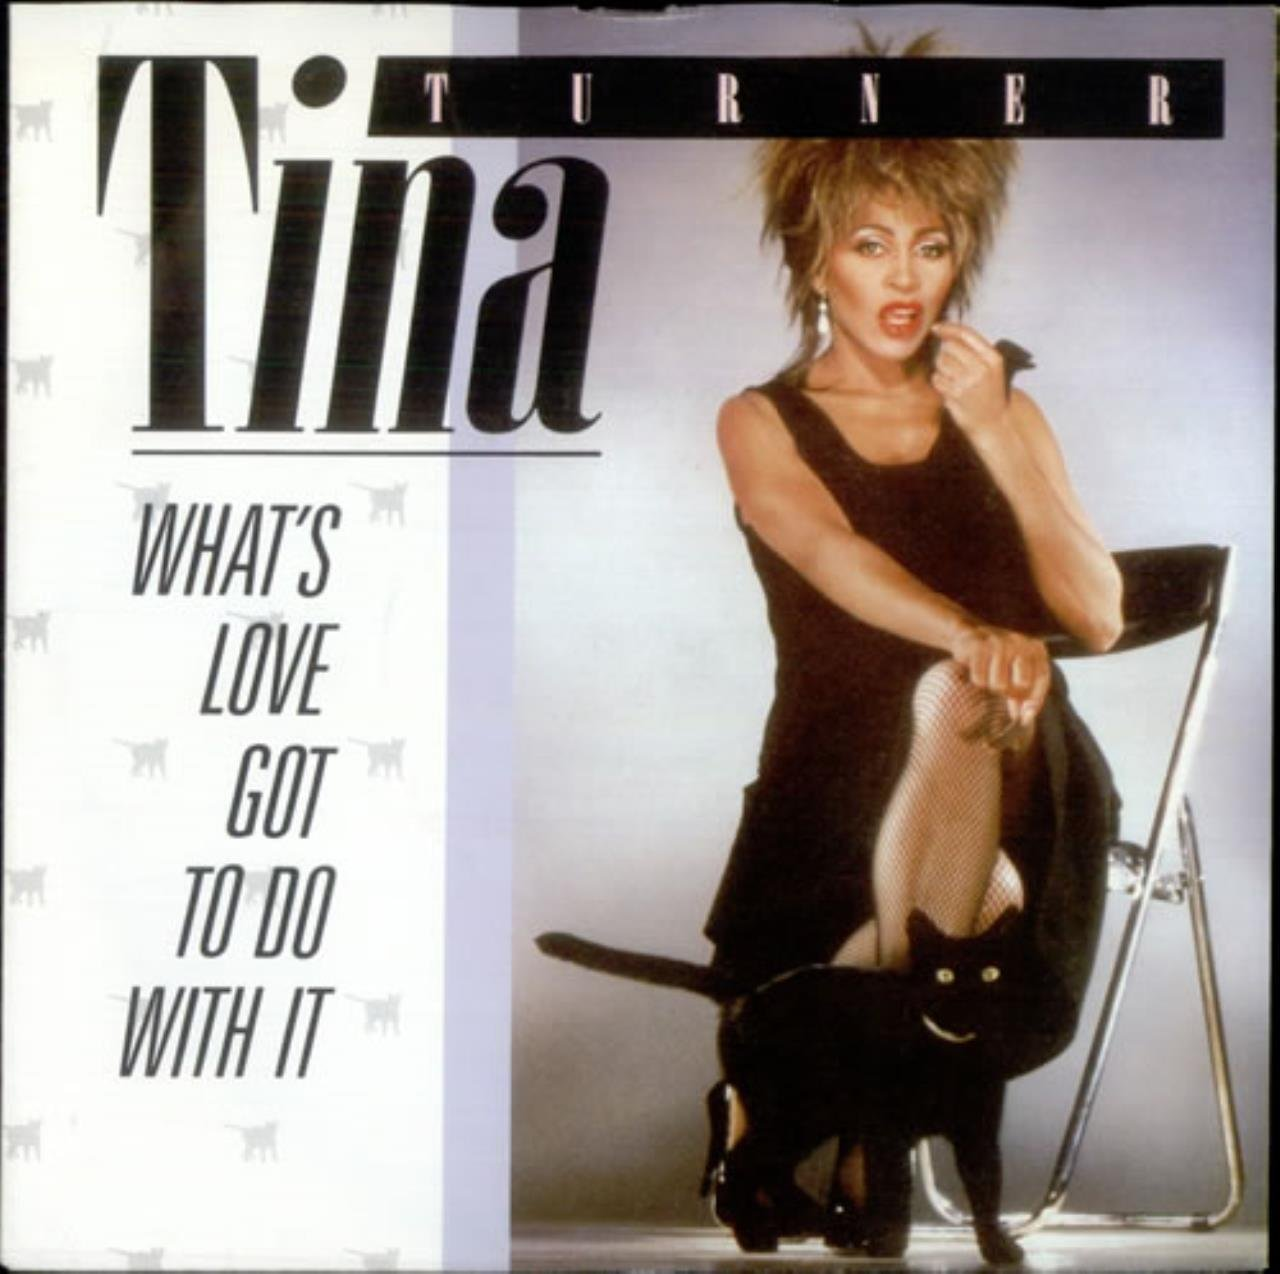 'What's Love Got to Do with It', Tina Turner